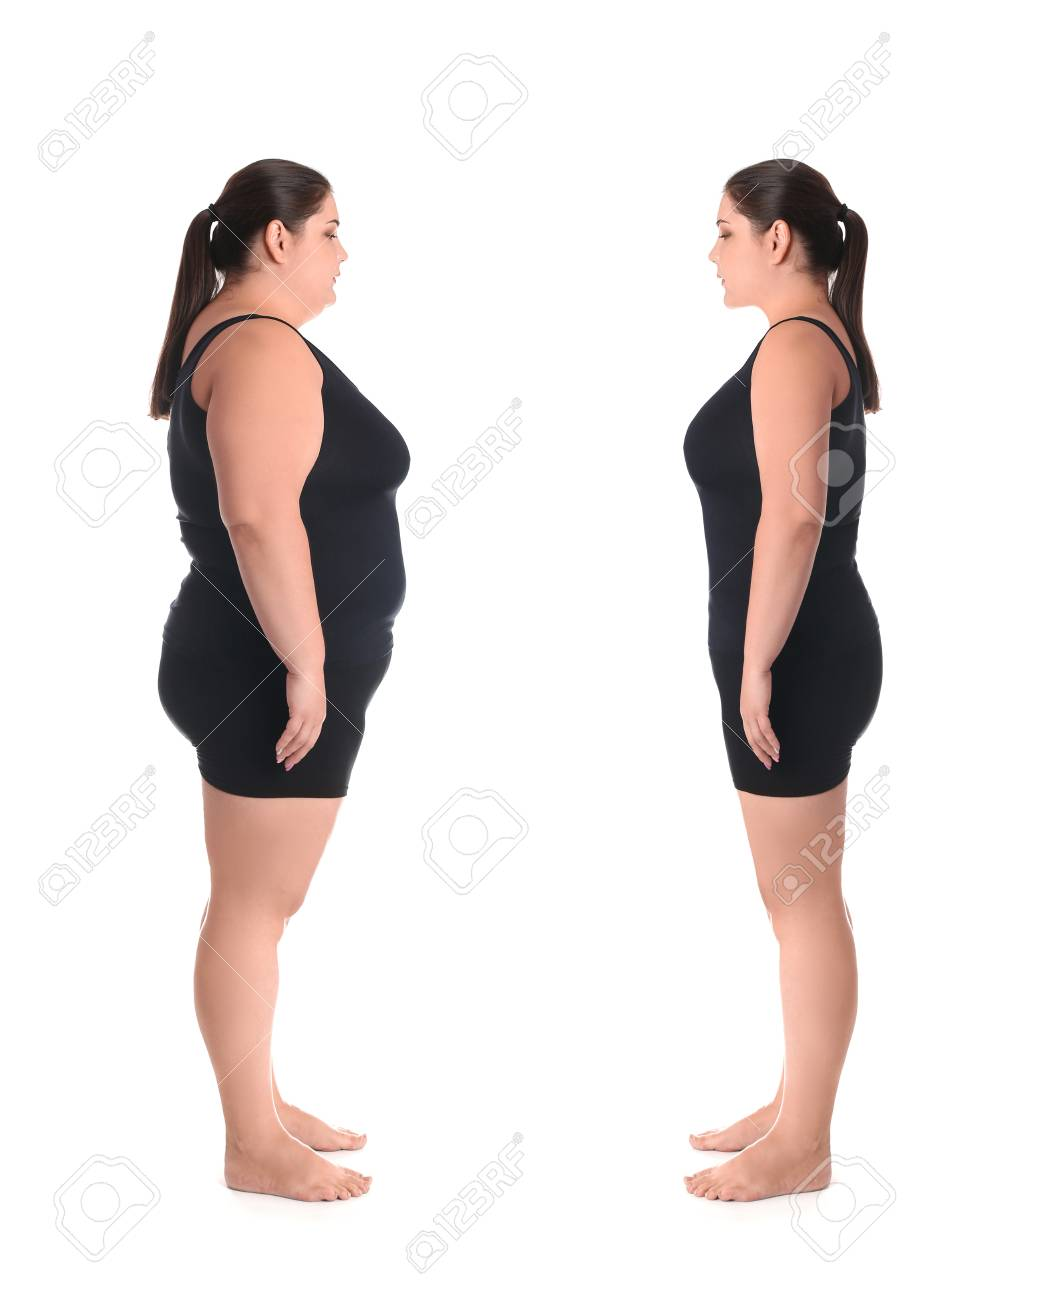 Overweight Woman Before And After Weight Loss On White Background 1058x1300